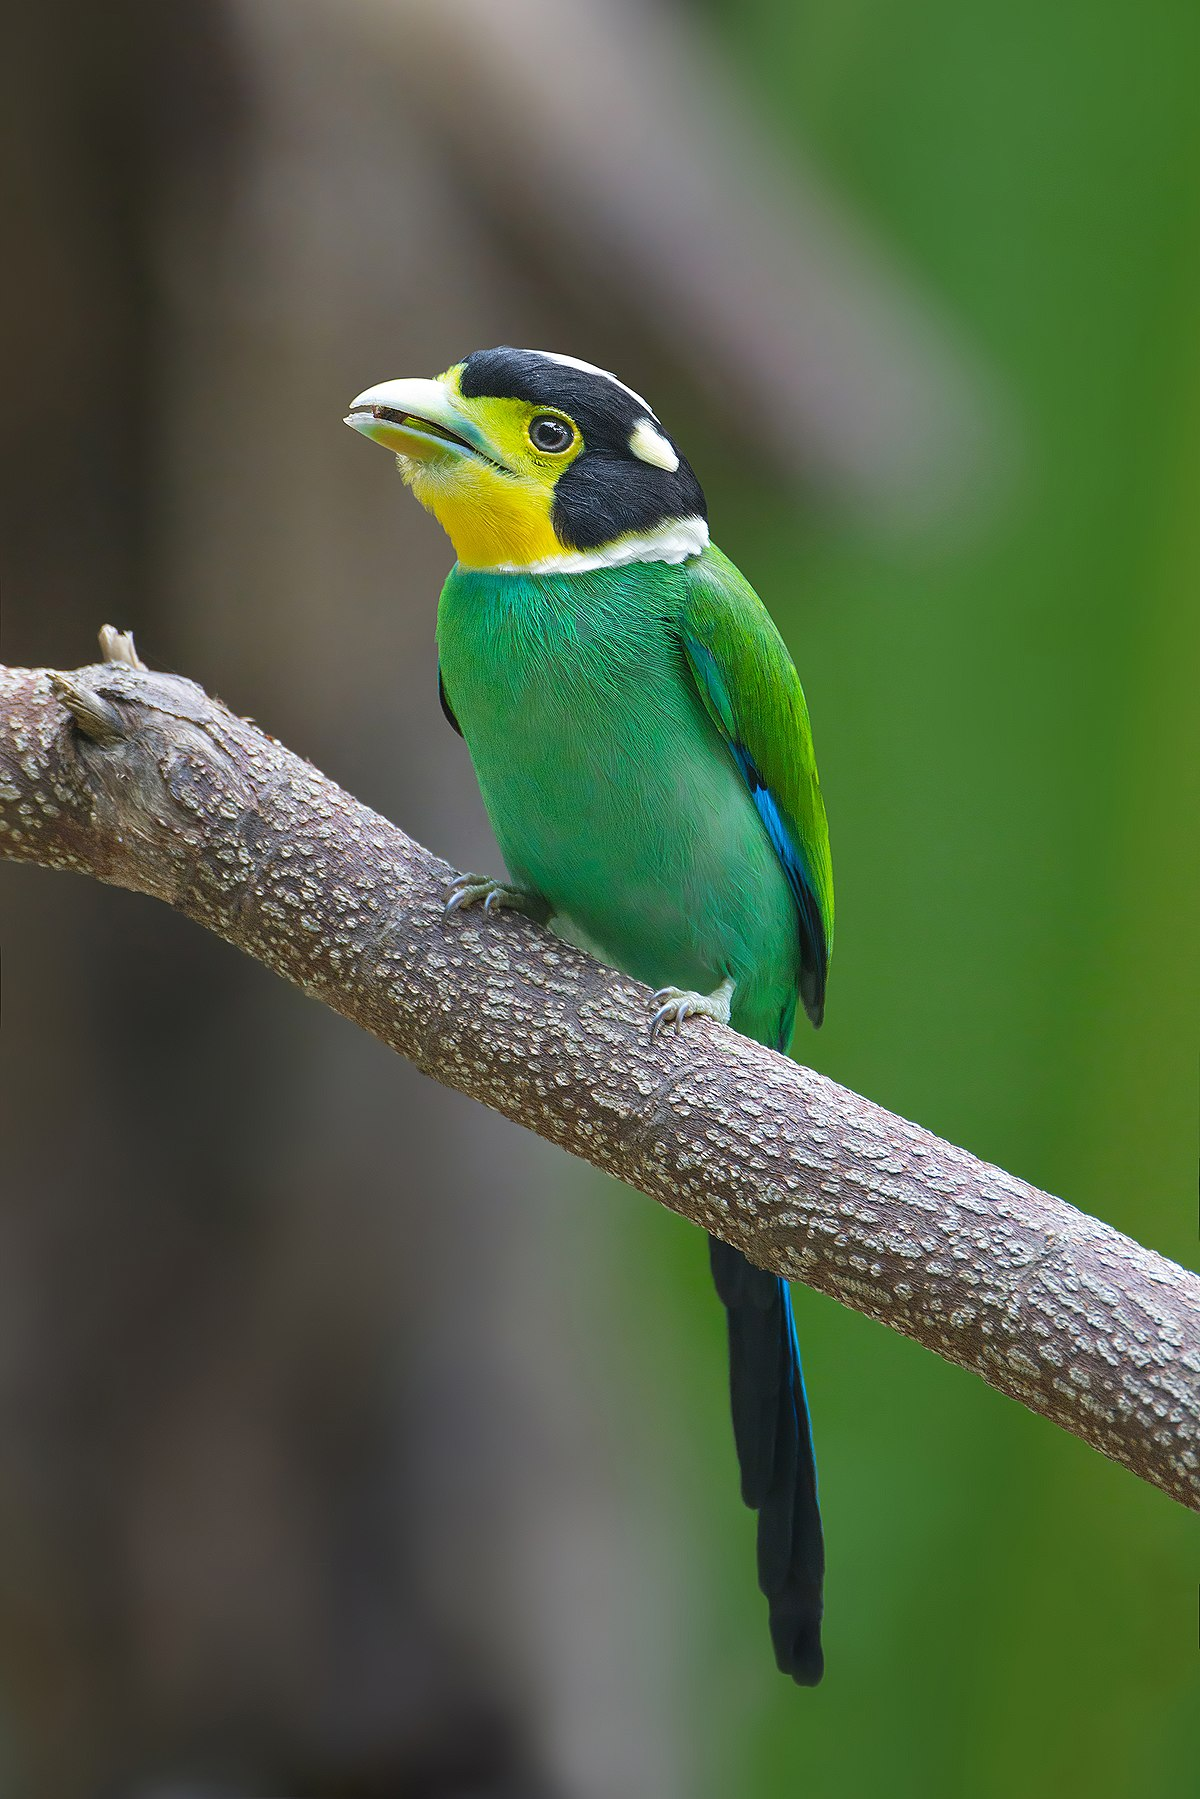 Long-tailed broadbill - Wikipedia